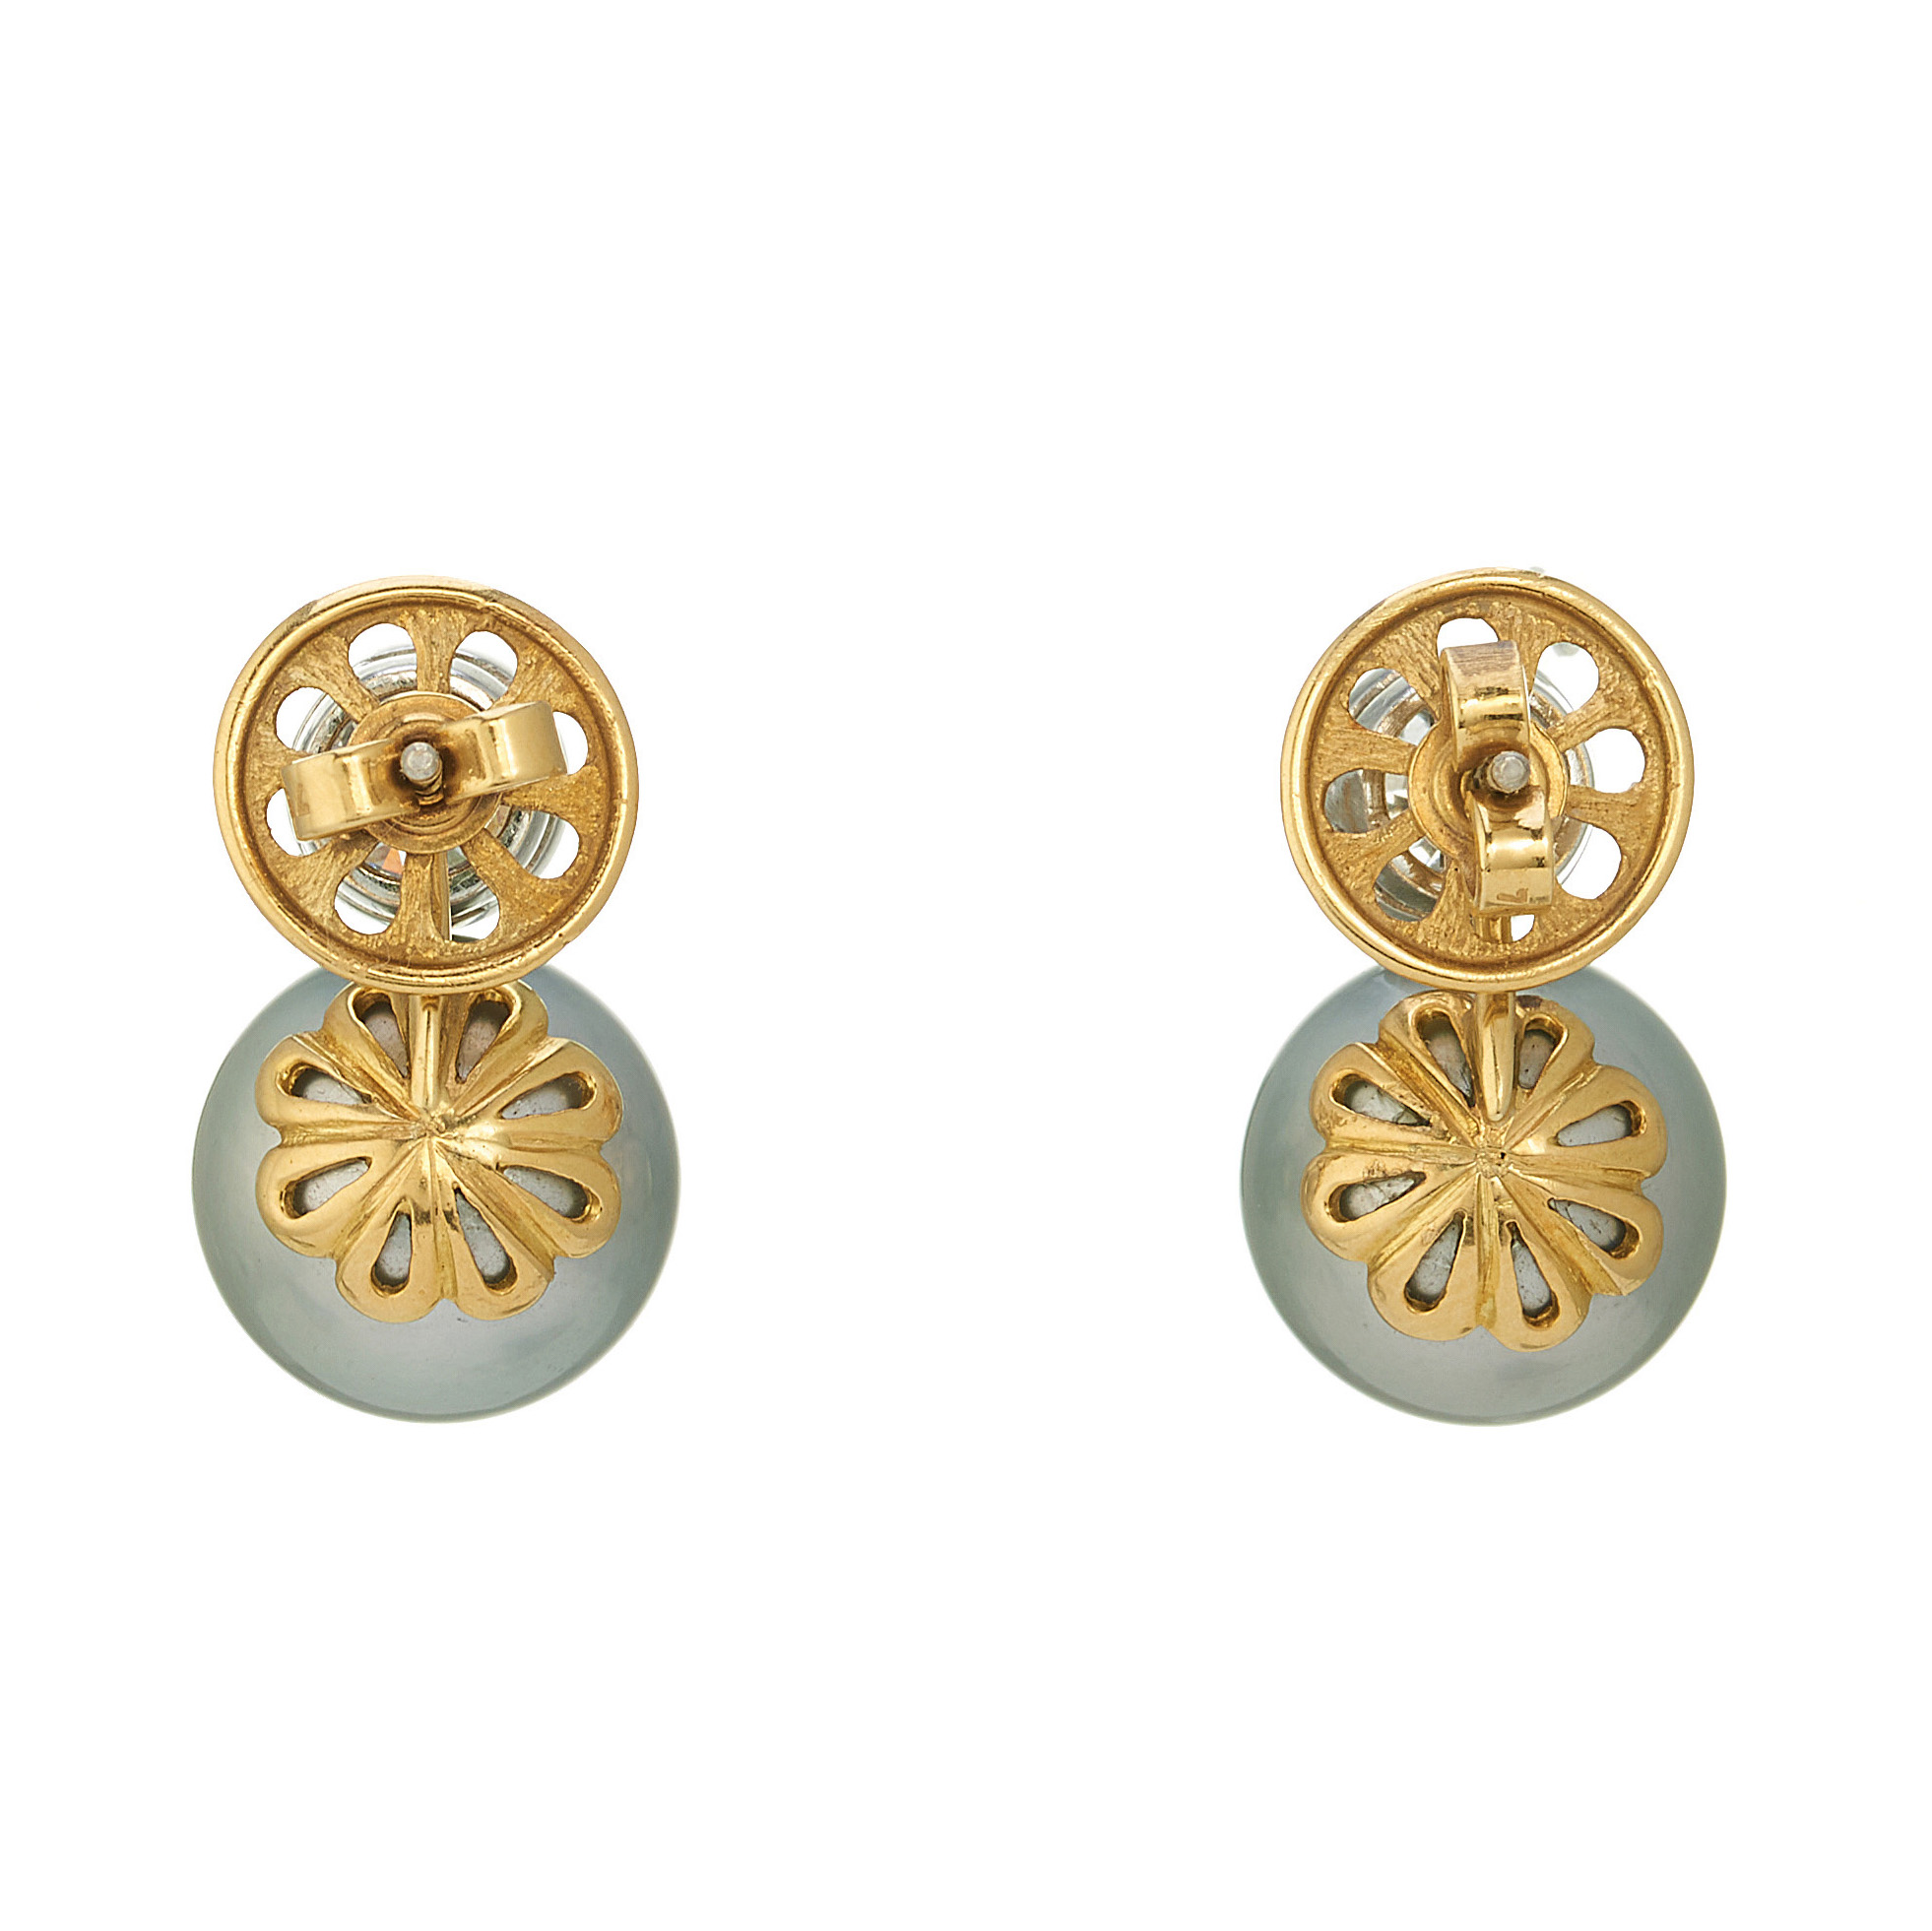 A pair of diamond and South Sea cultured pearl earrings - Image 2 of 2